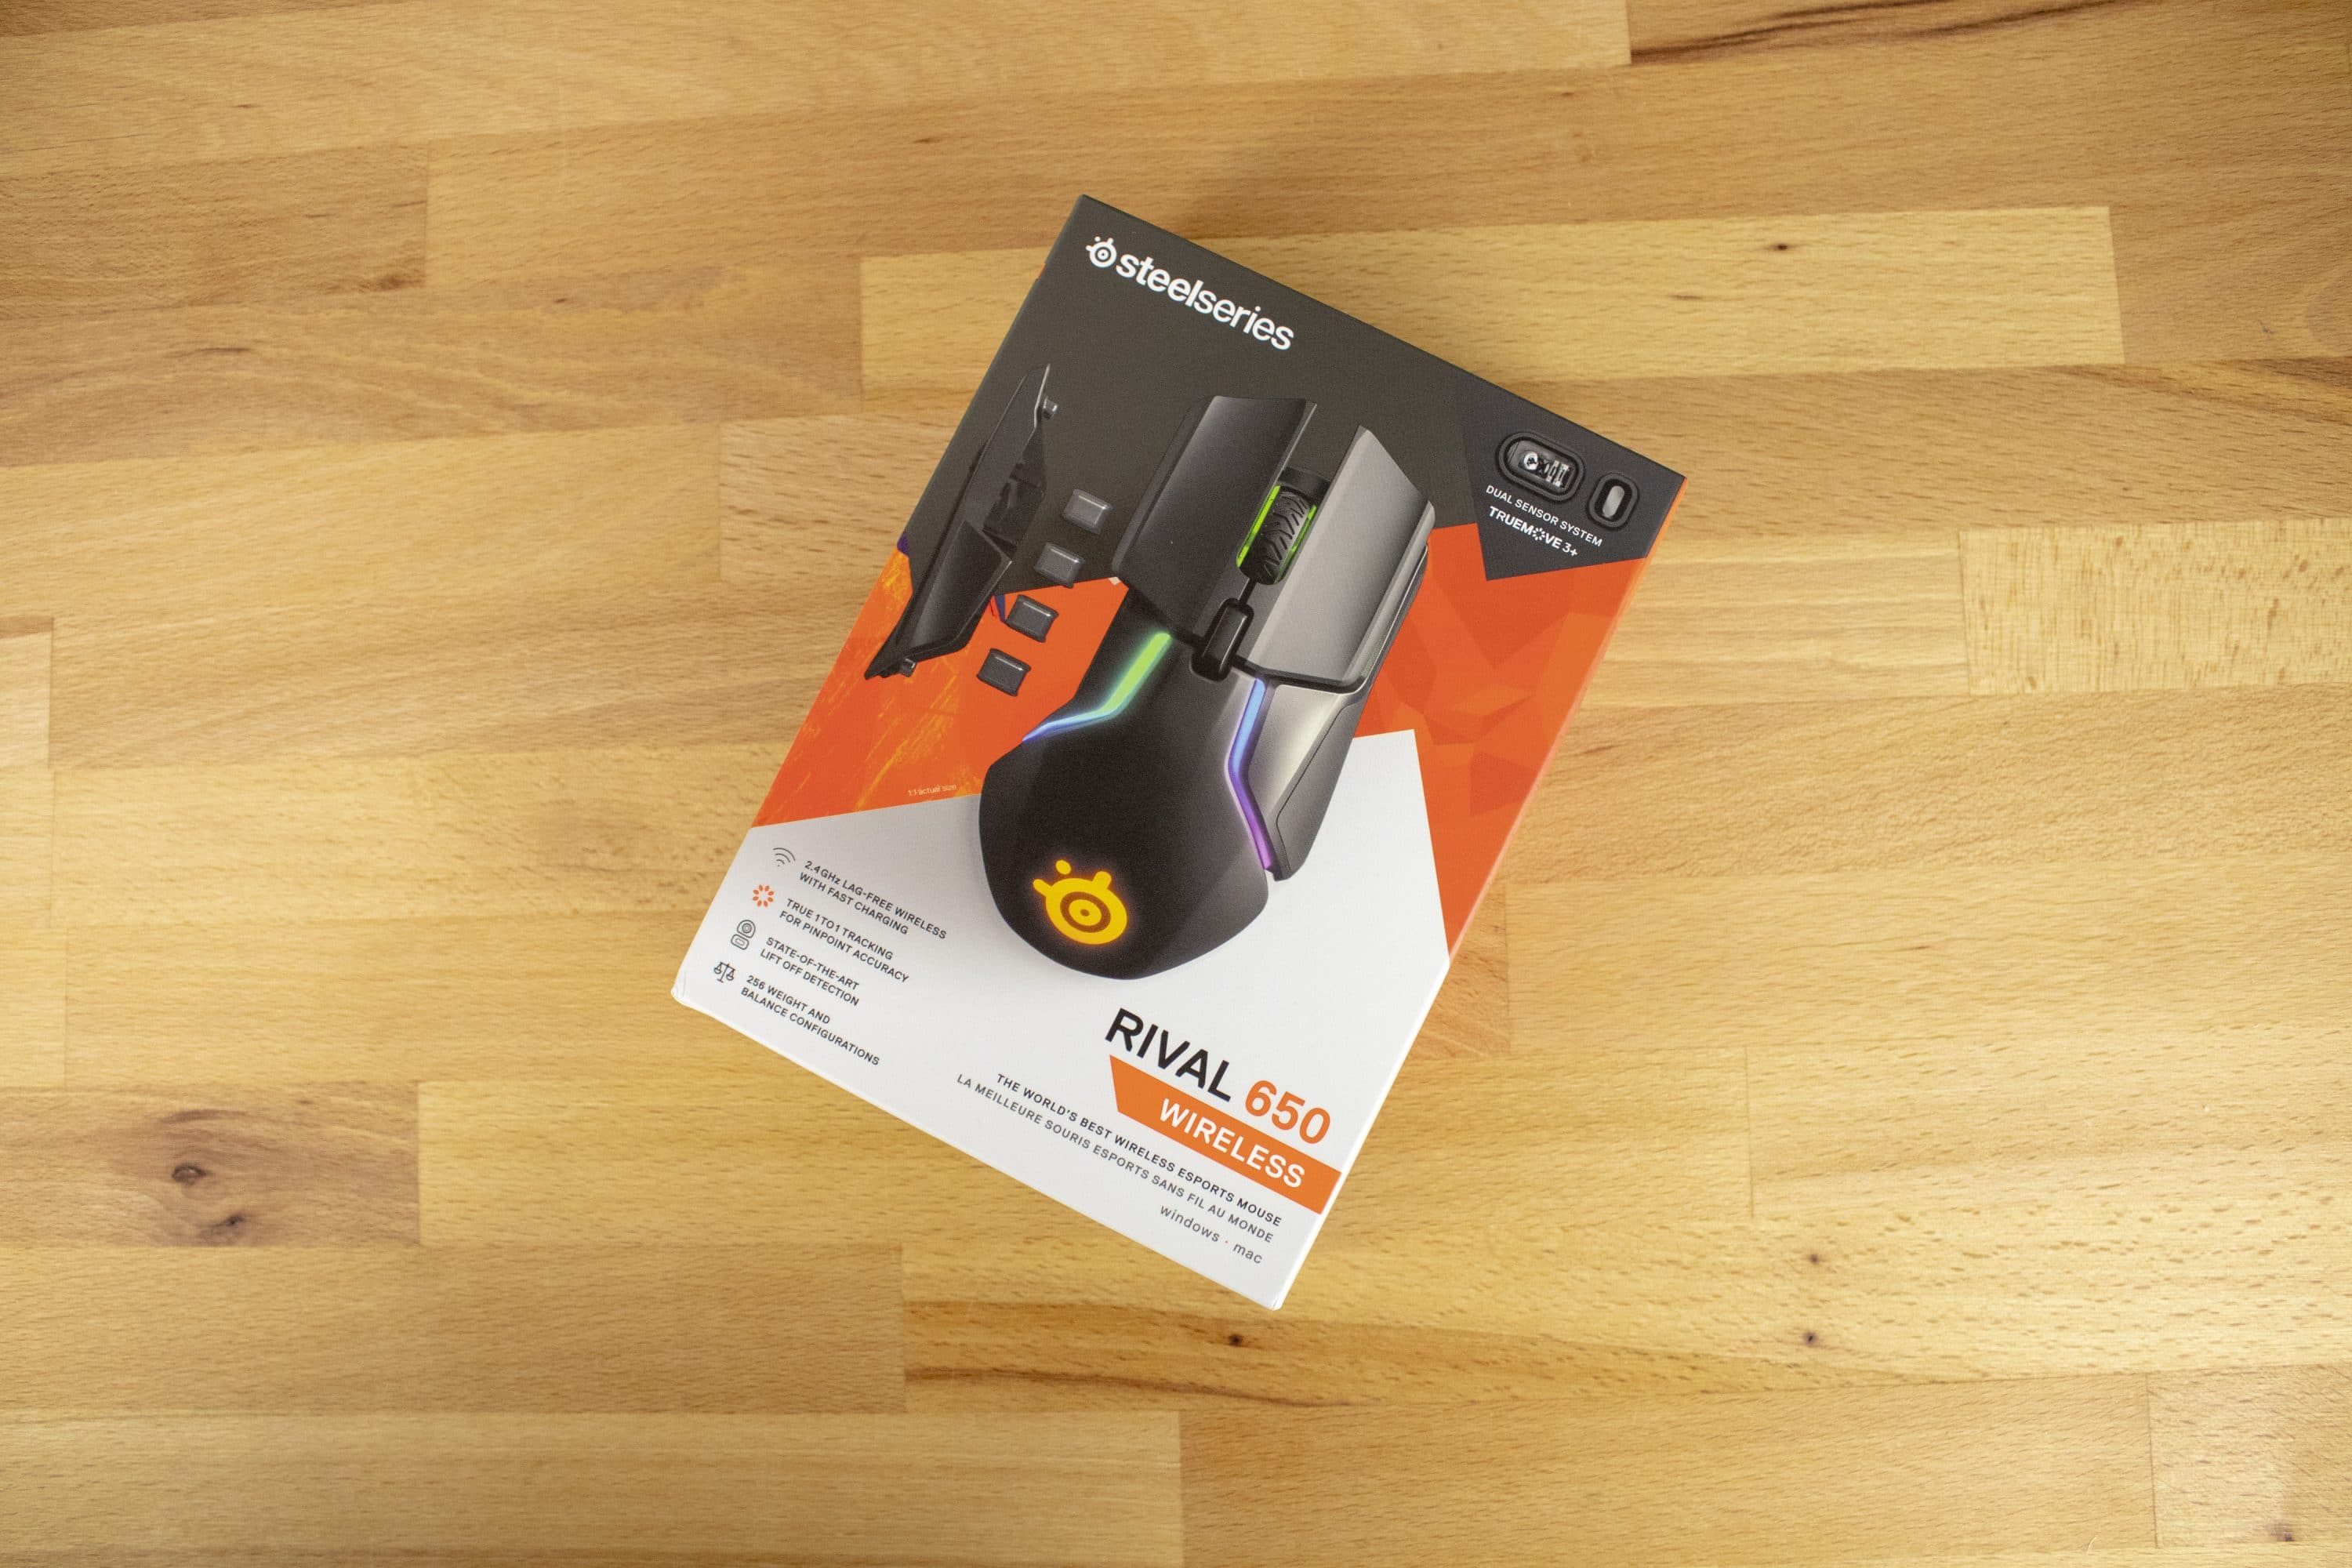 SteelSeries Rival 650 Wireless: Wireless Gaming Mouse with